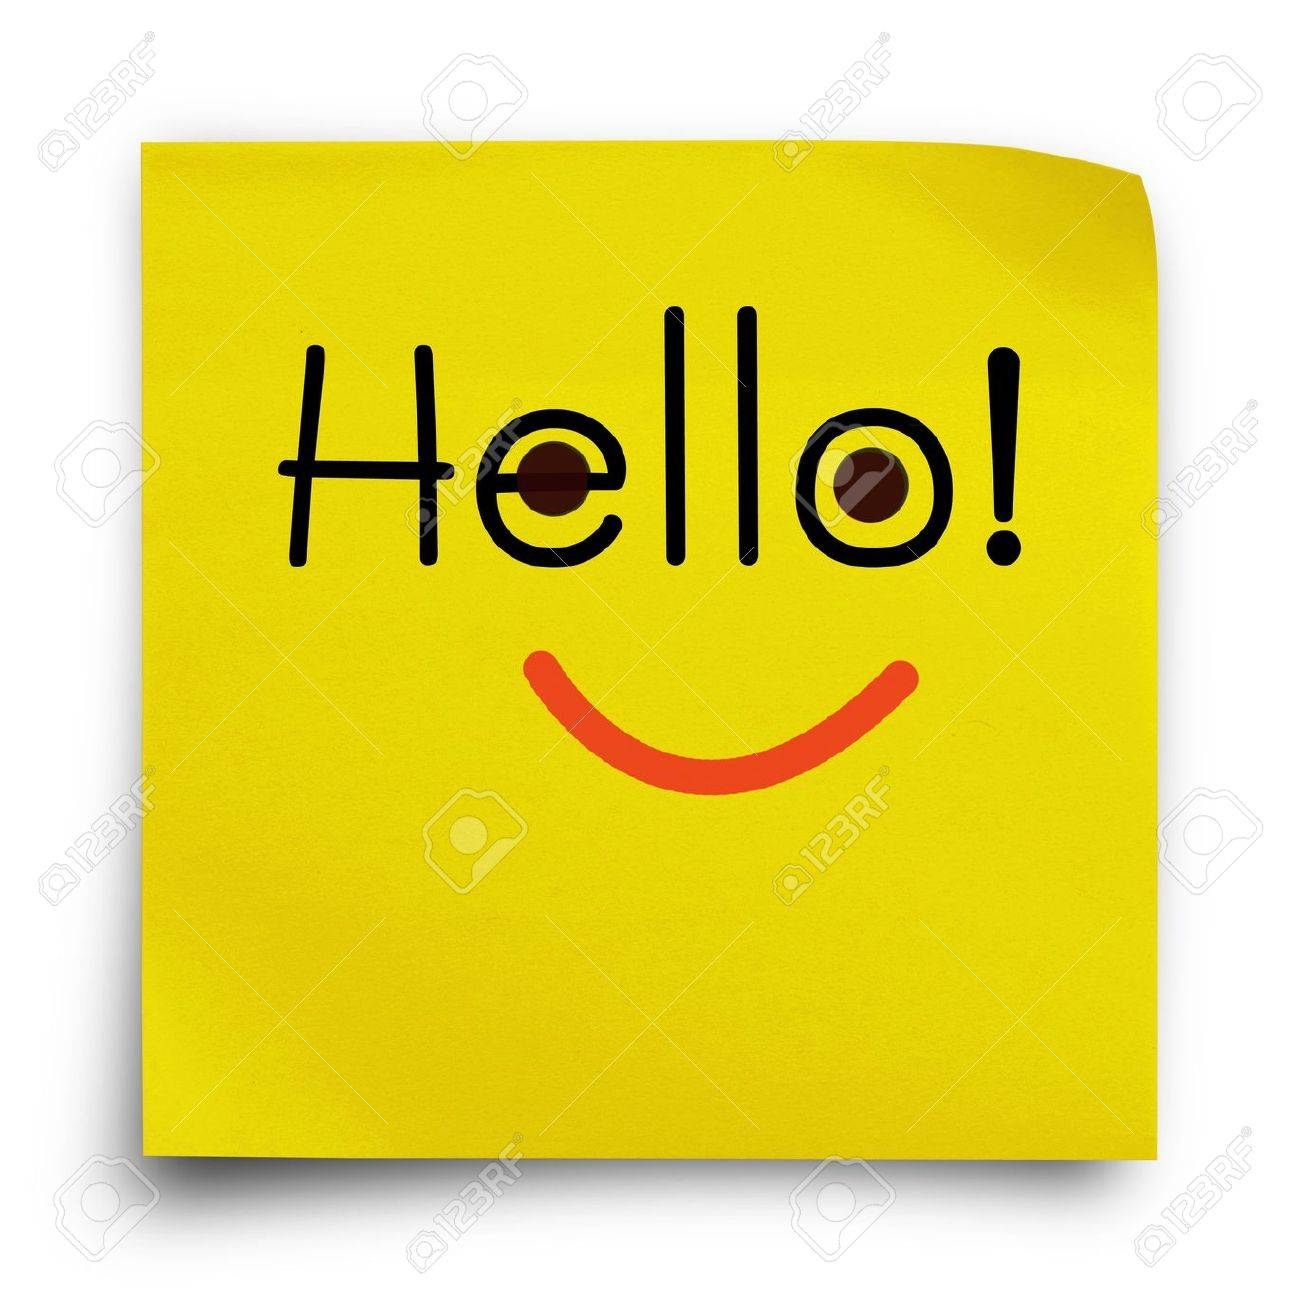 Hello word with smiley face on yellow sticker paper note